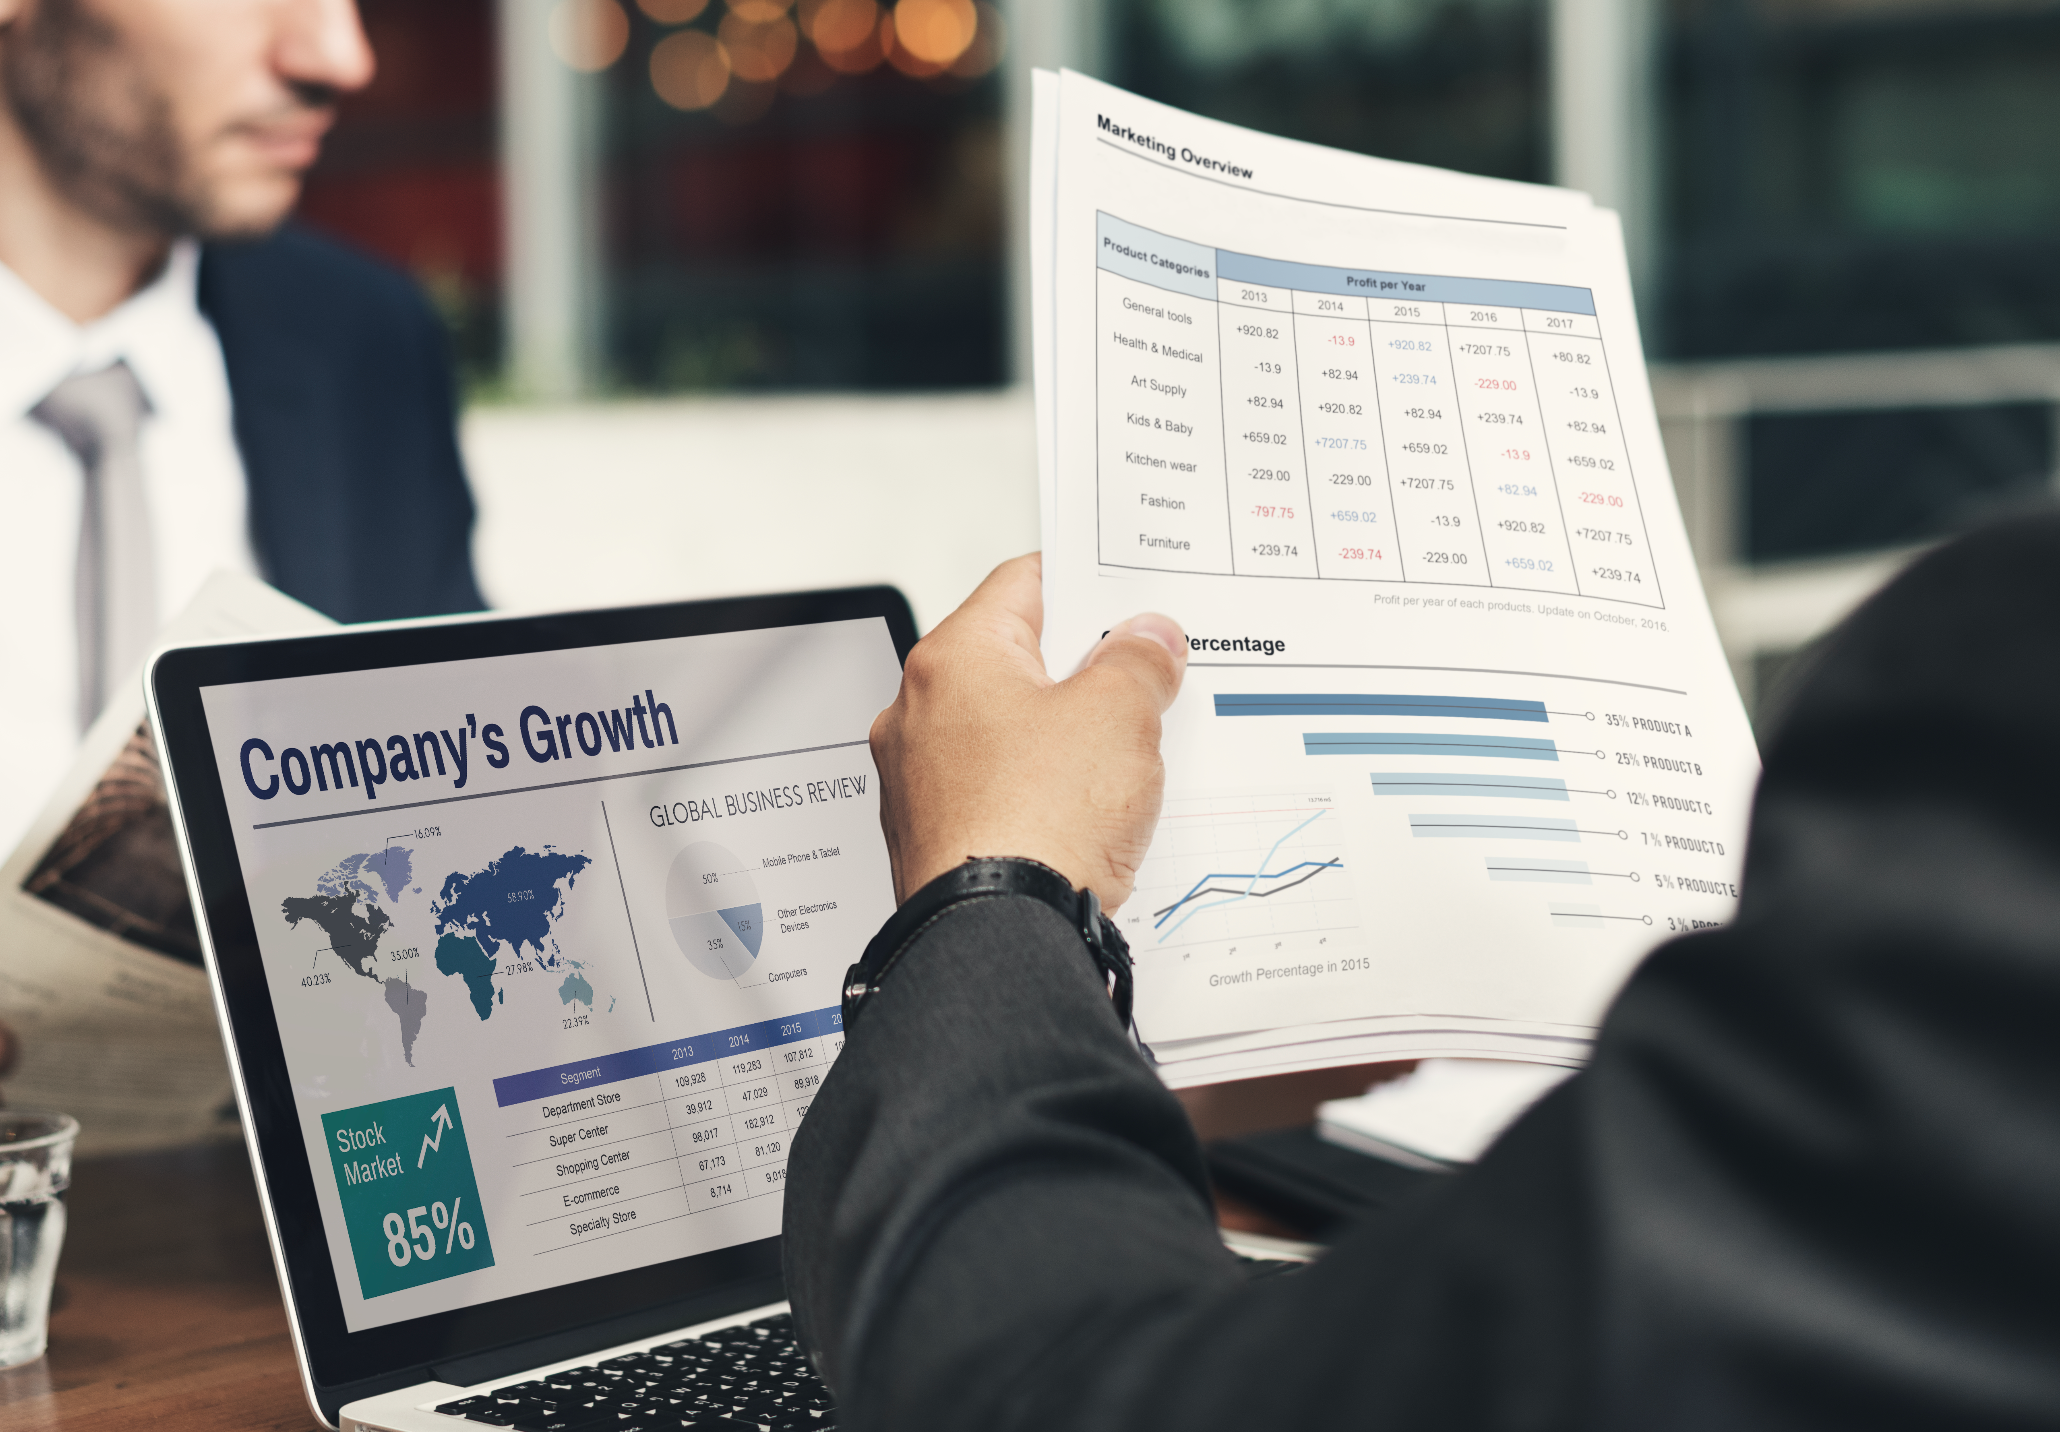 Showing your business on a global scale means growth